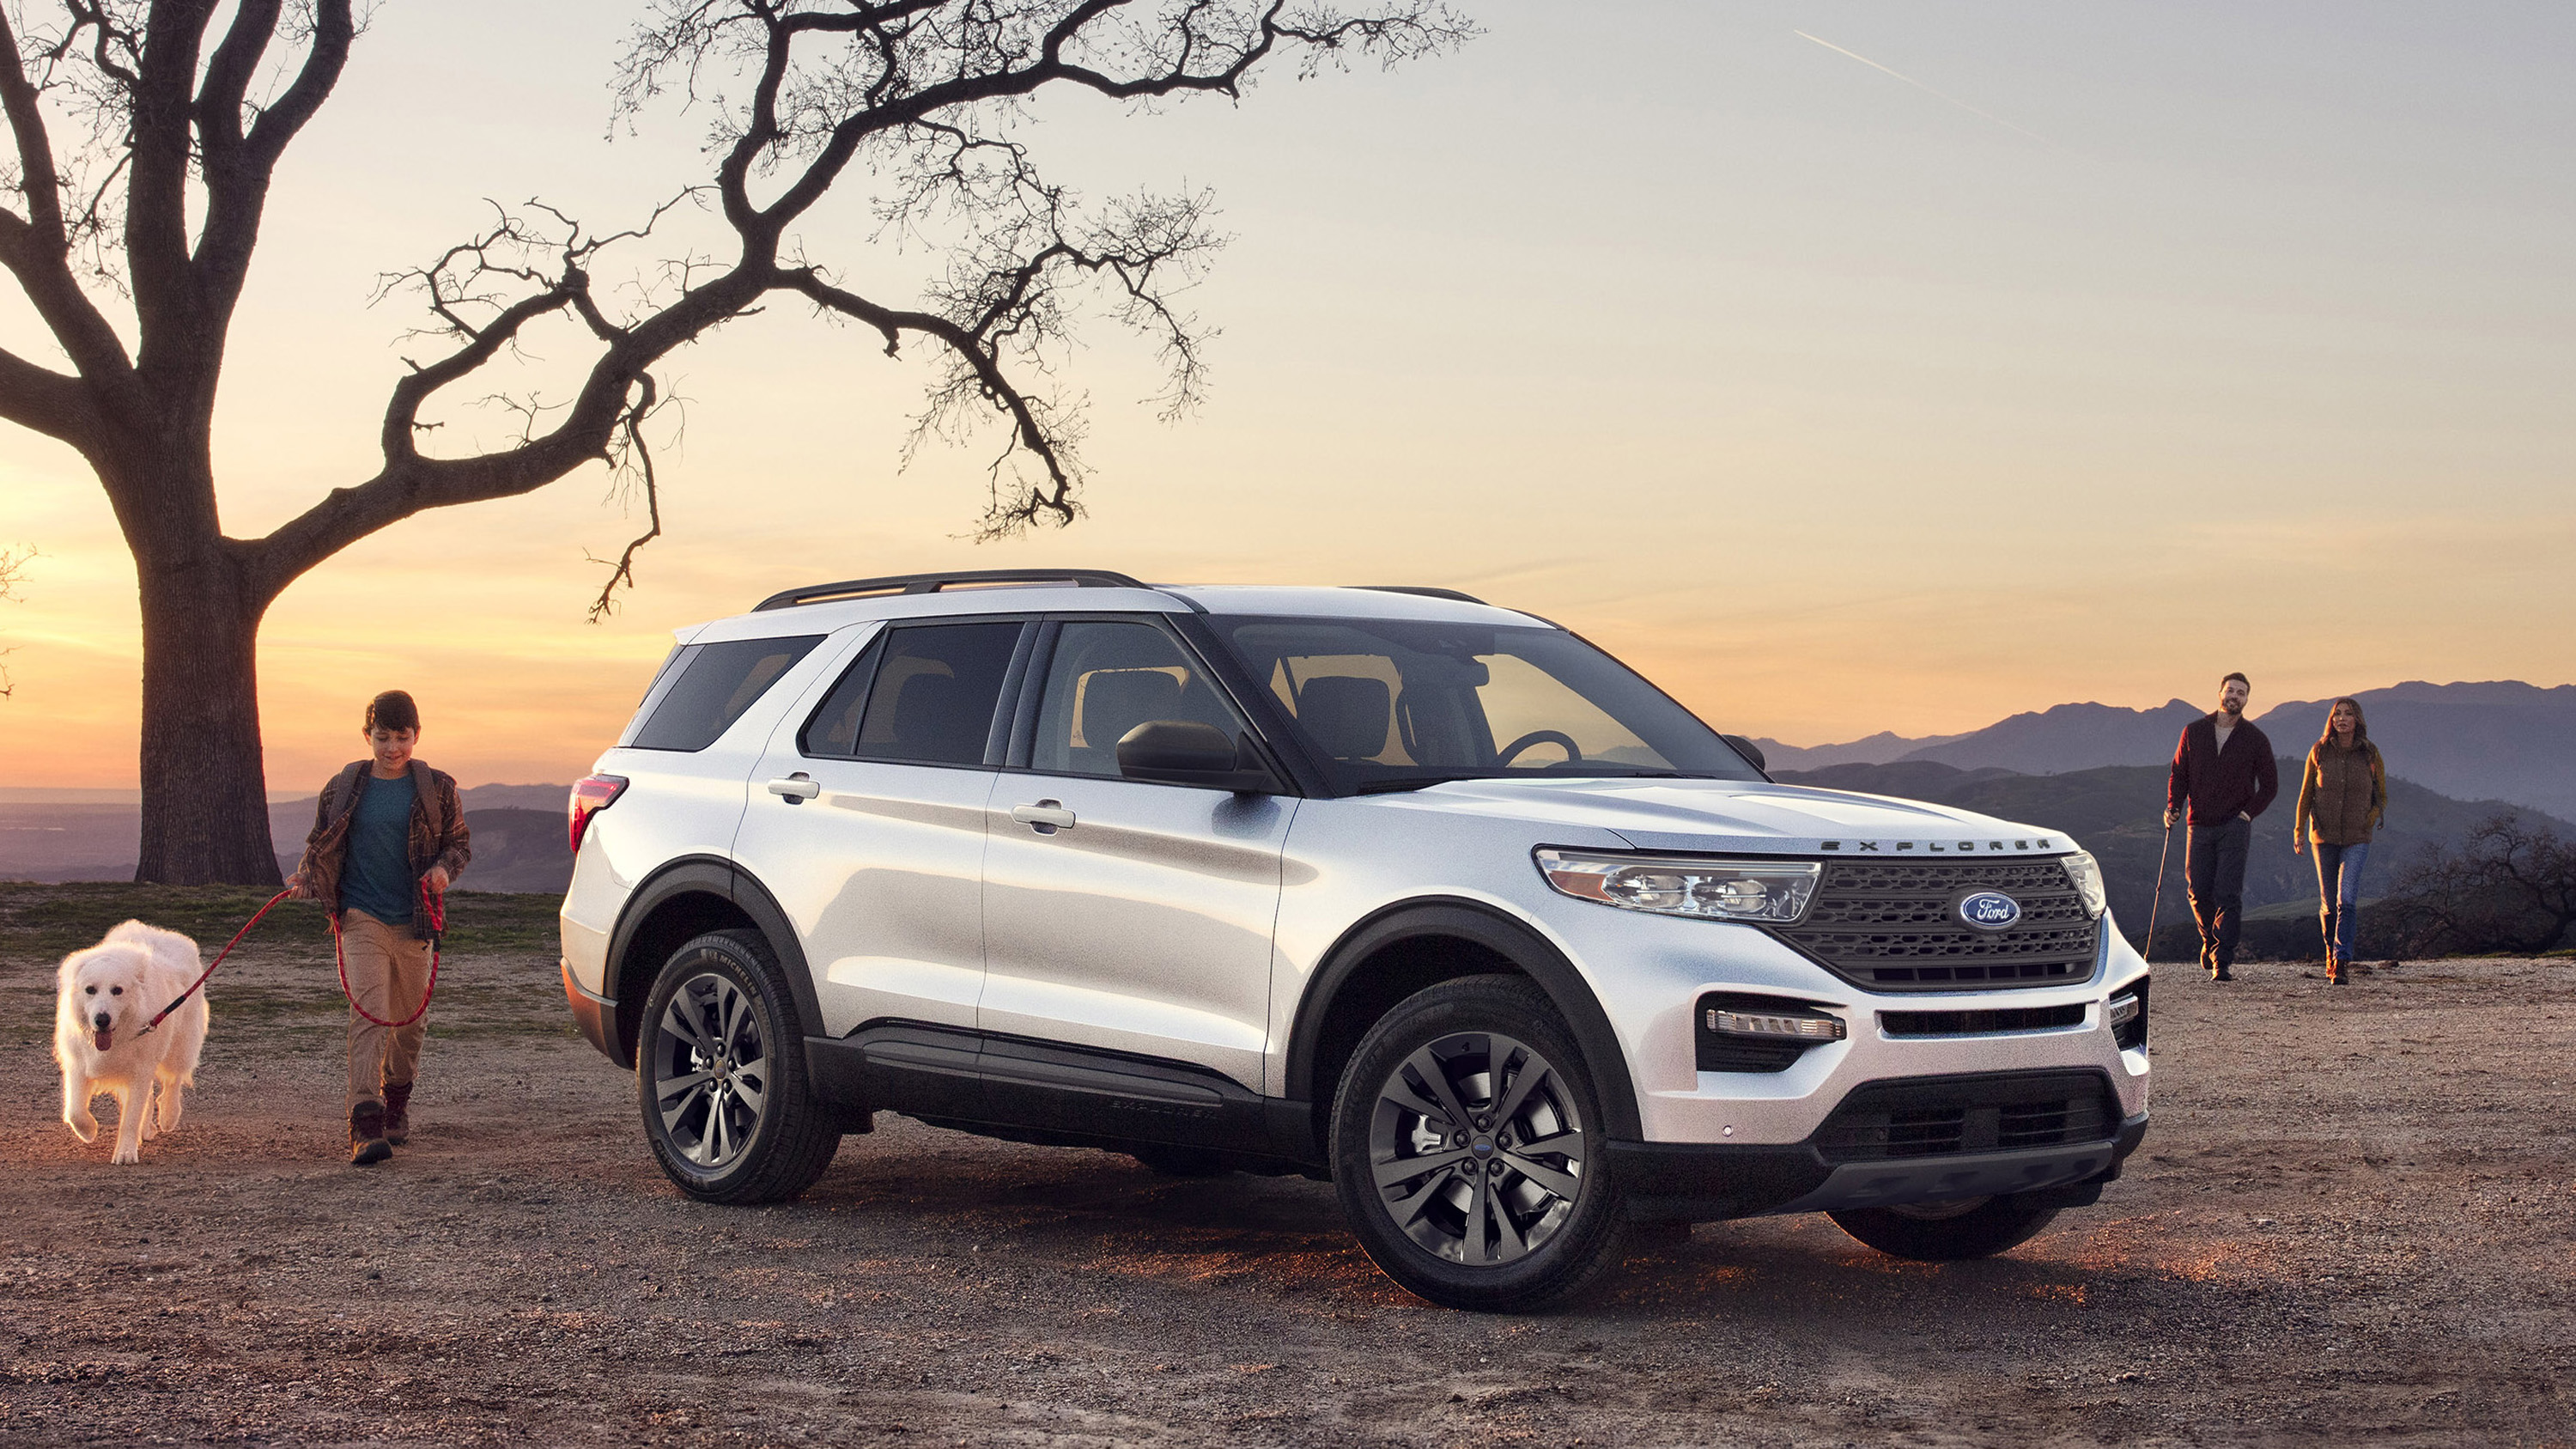 2021 The Ford Explorer Images